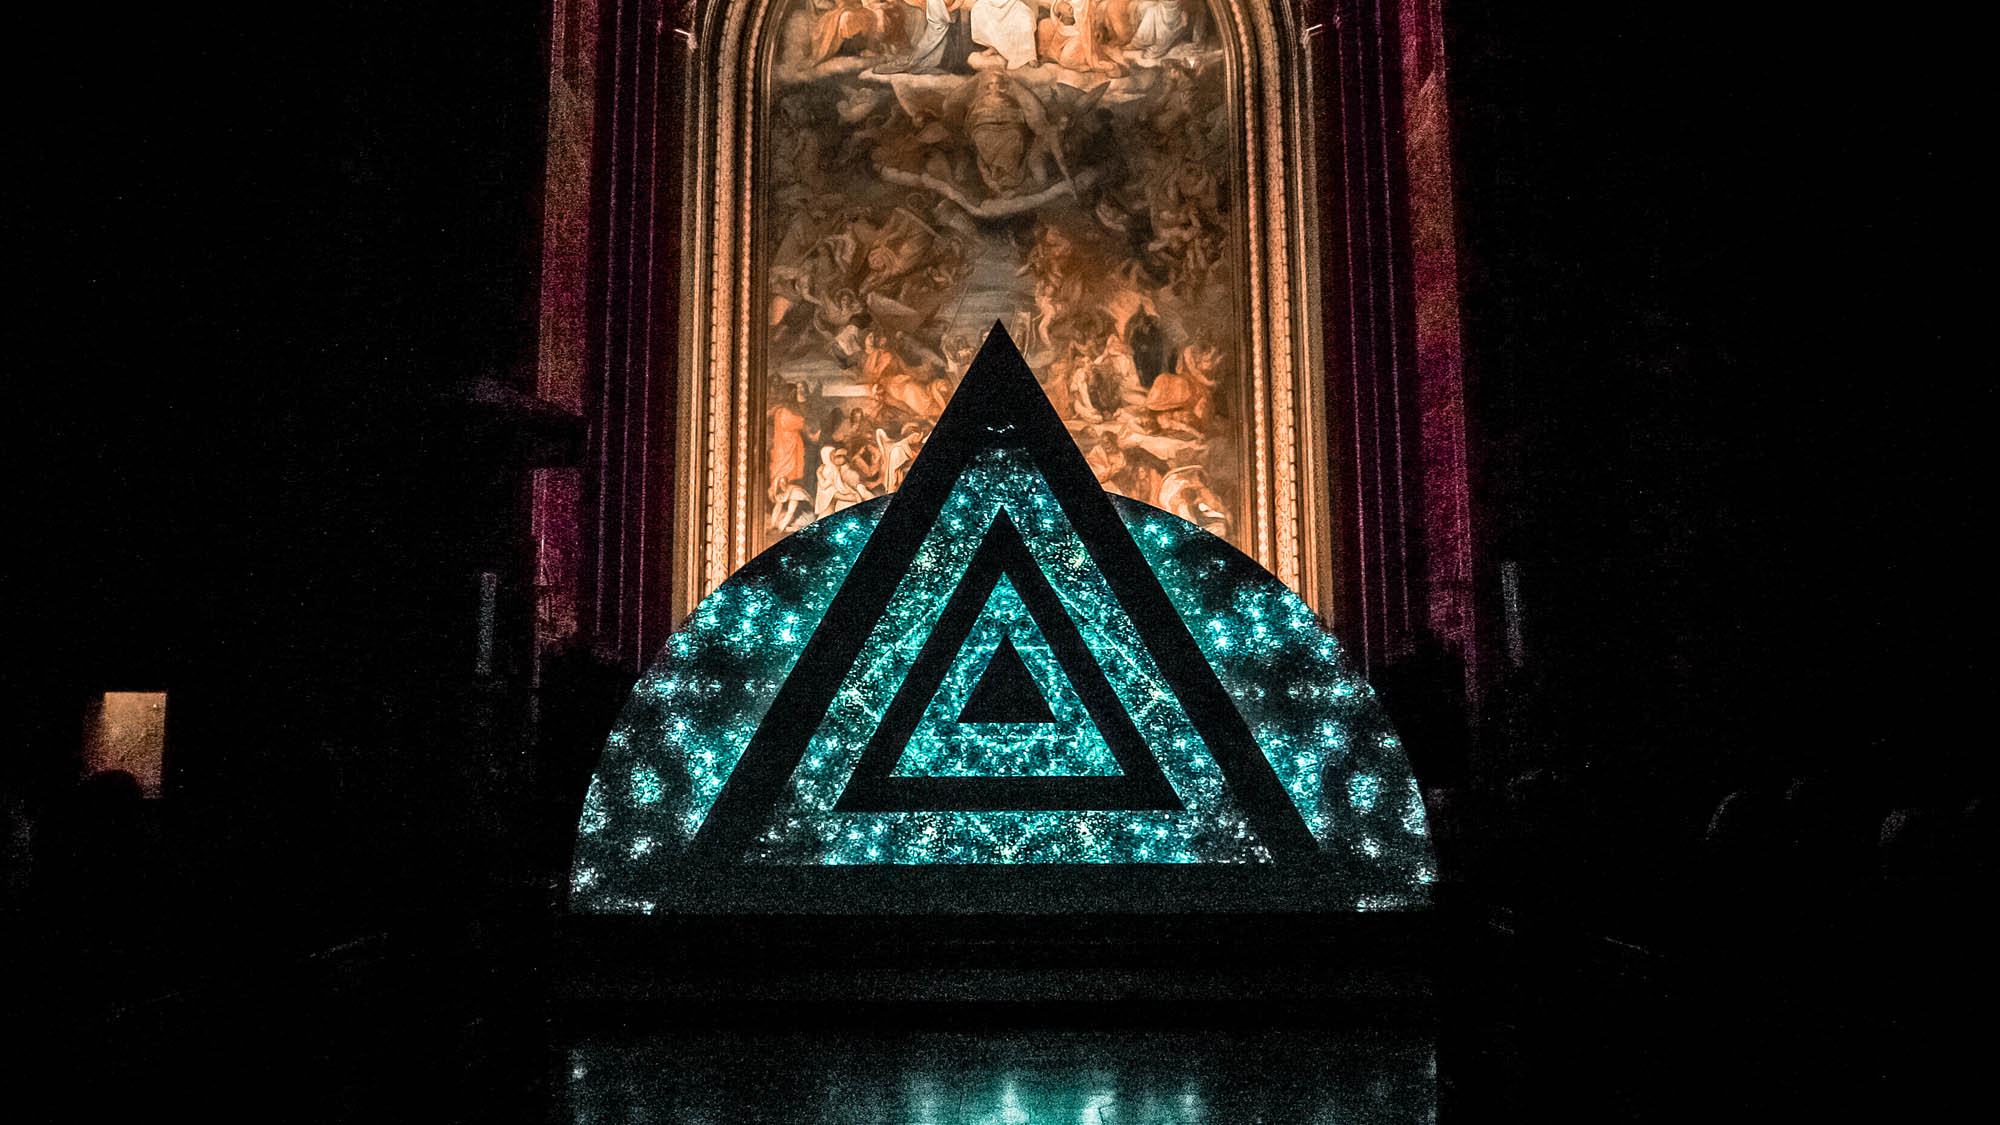 Image of a video art installation. Triangle with geometric and ornamental design. Light art show in a church